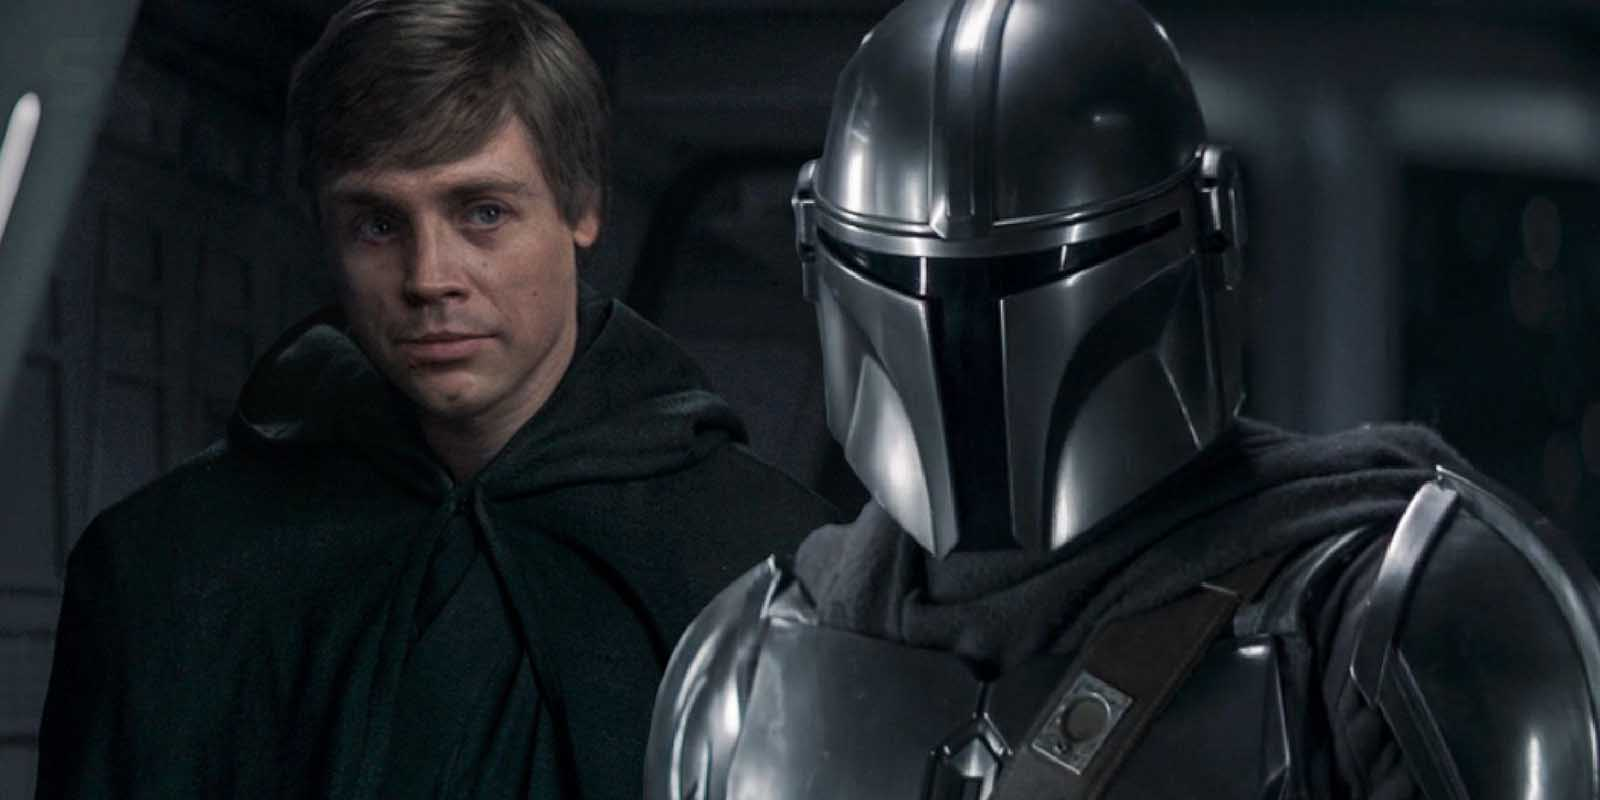 Fans were blown away by Luke Skywalker appearing in 'The Mandalorian' episode 8. But was it actually Mark Hamill? Go behind the scenes of the episode.